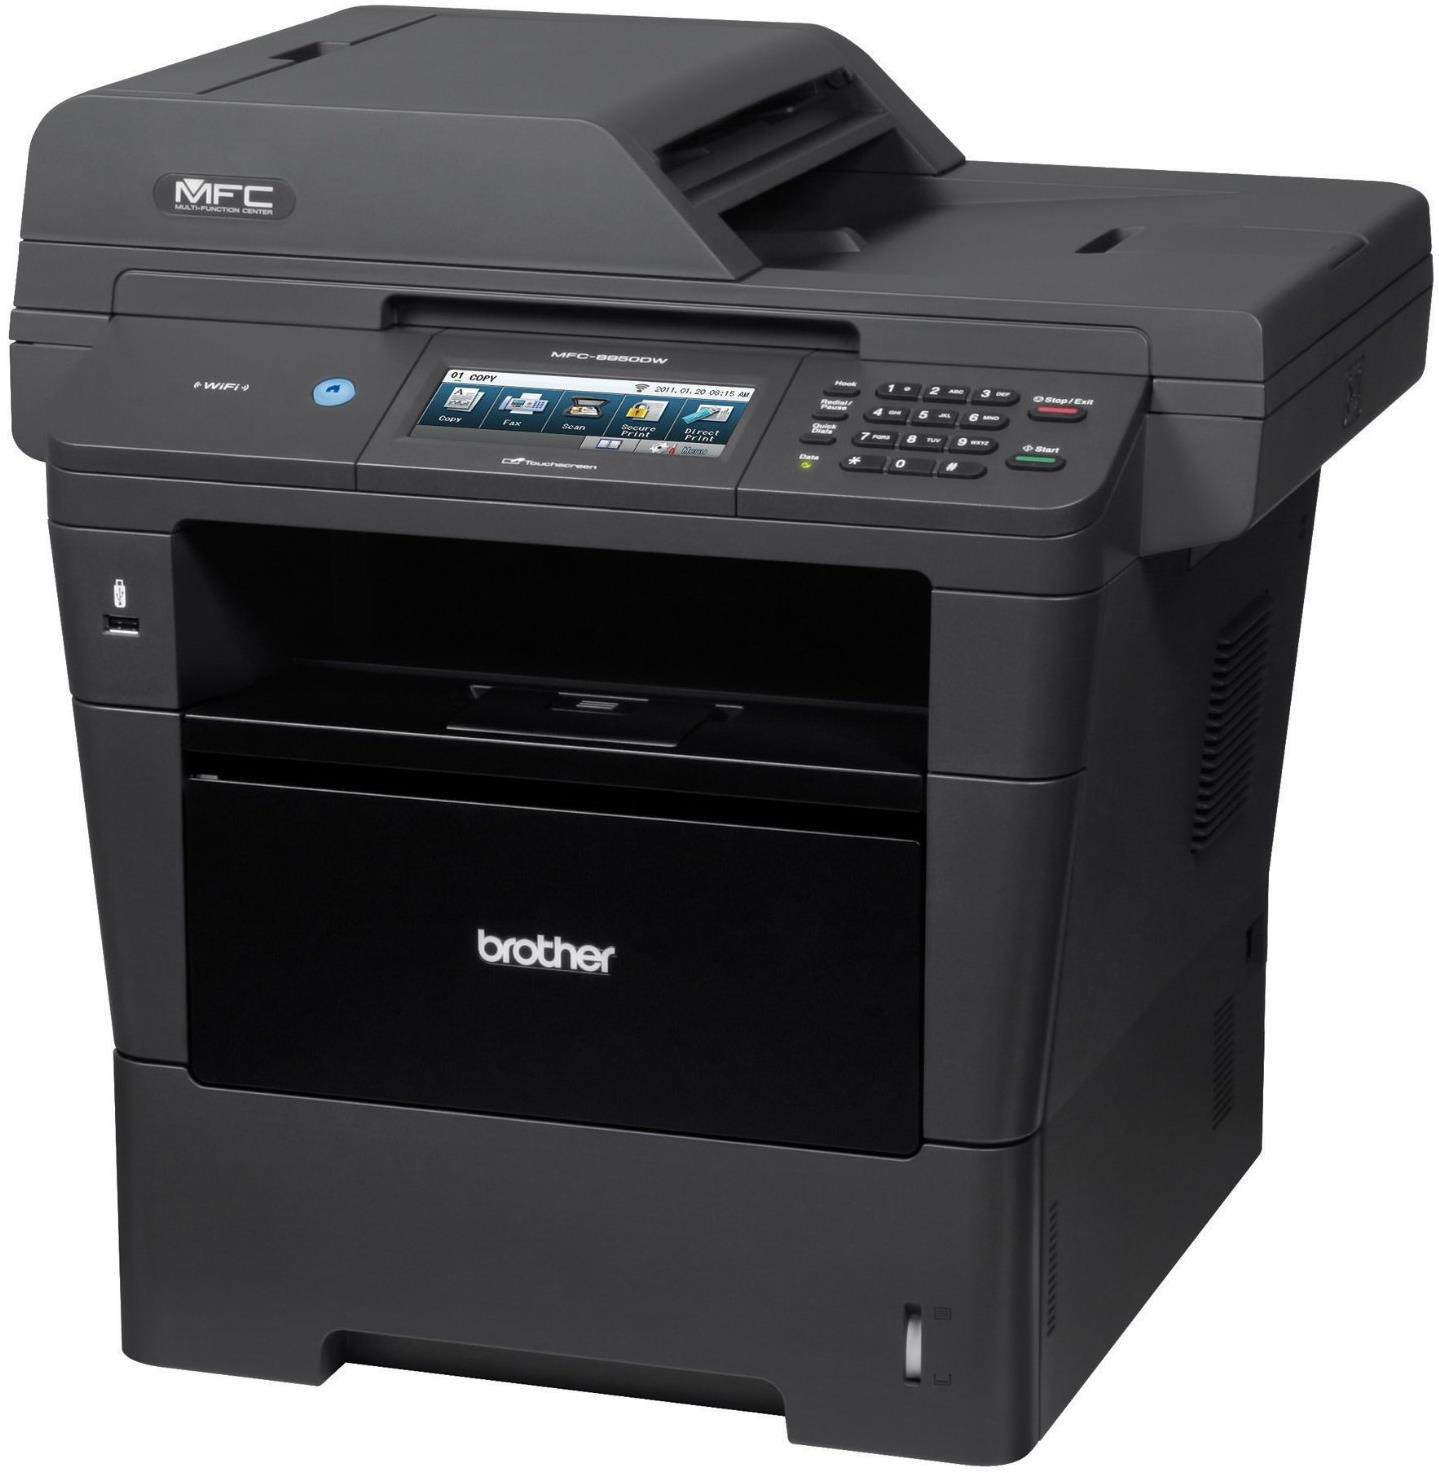 Brother MFC-8950Dw Mono Multifunction Laser Printer